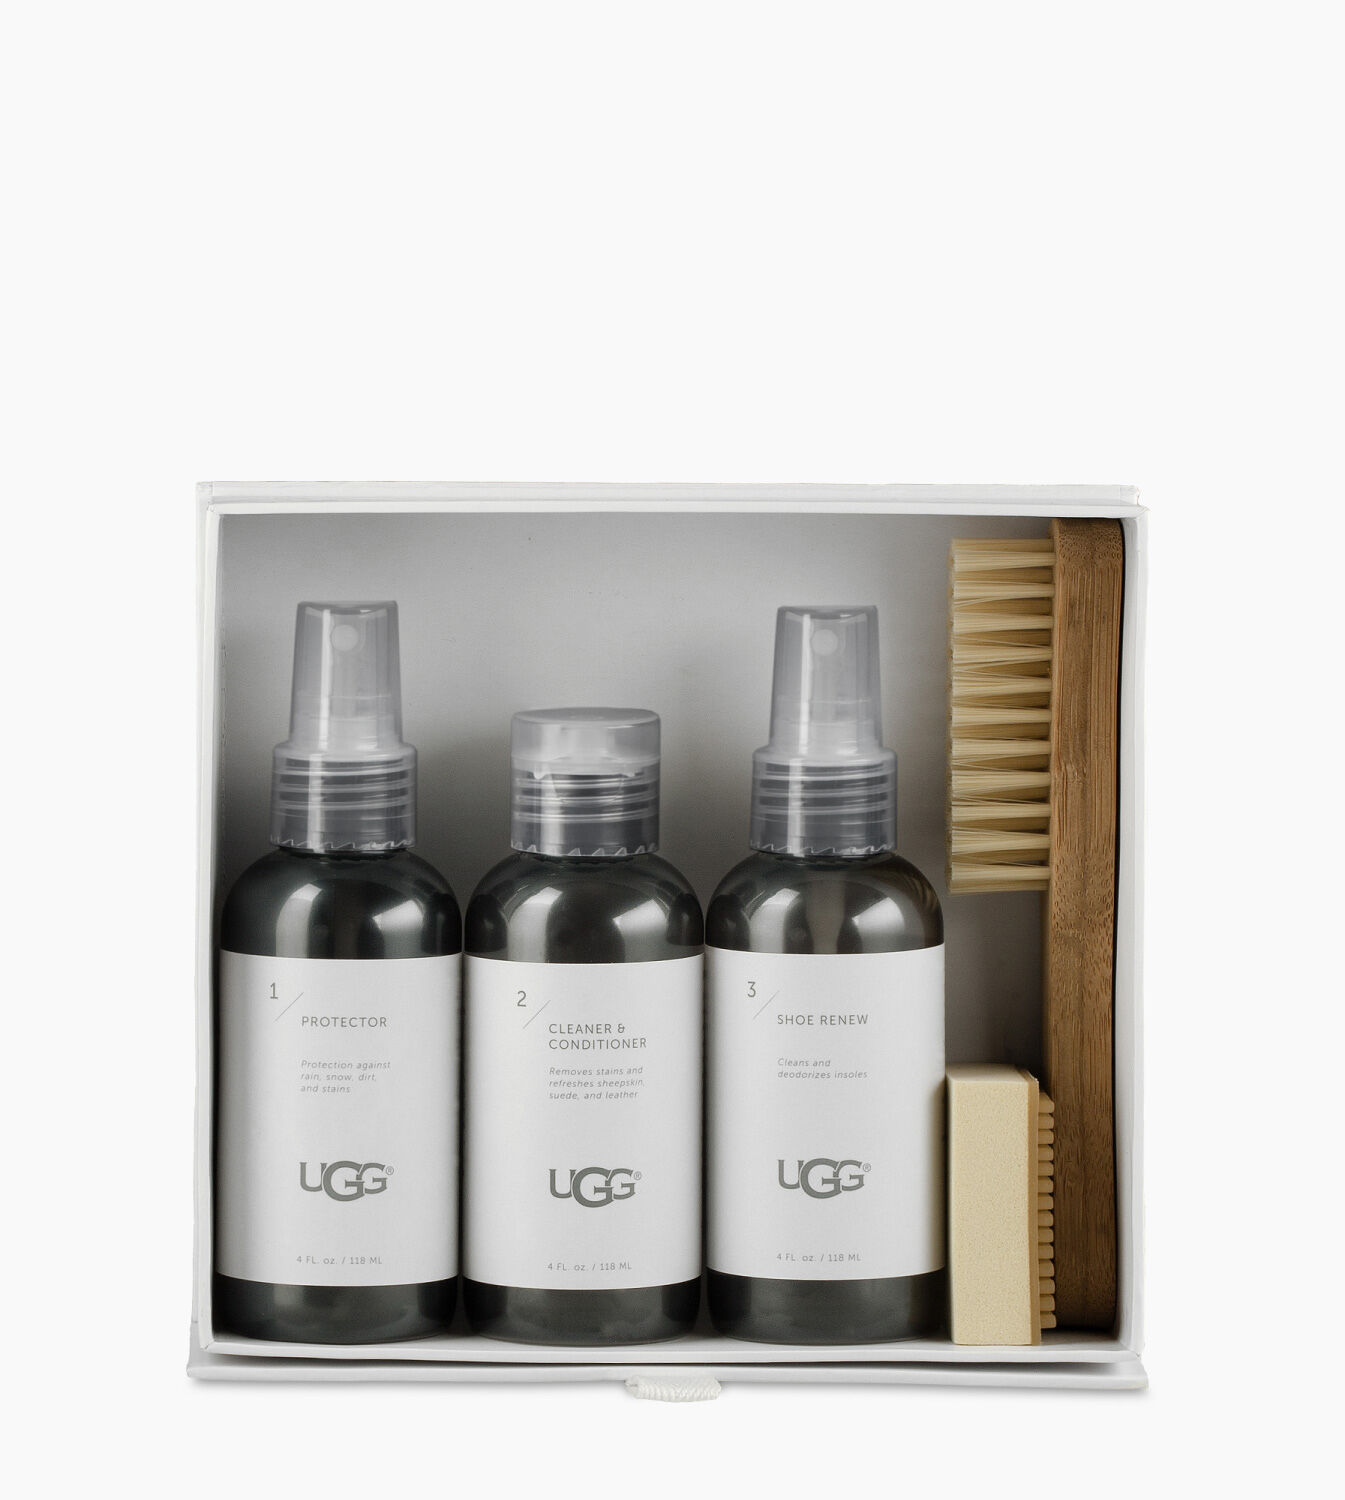 ugg waterproofing spray nz